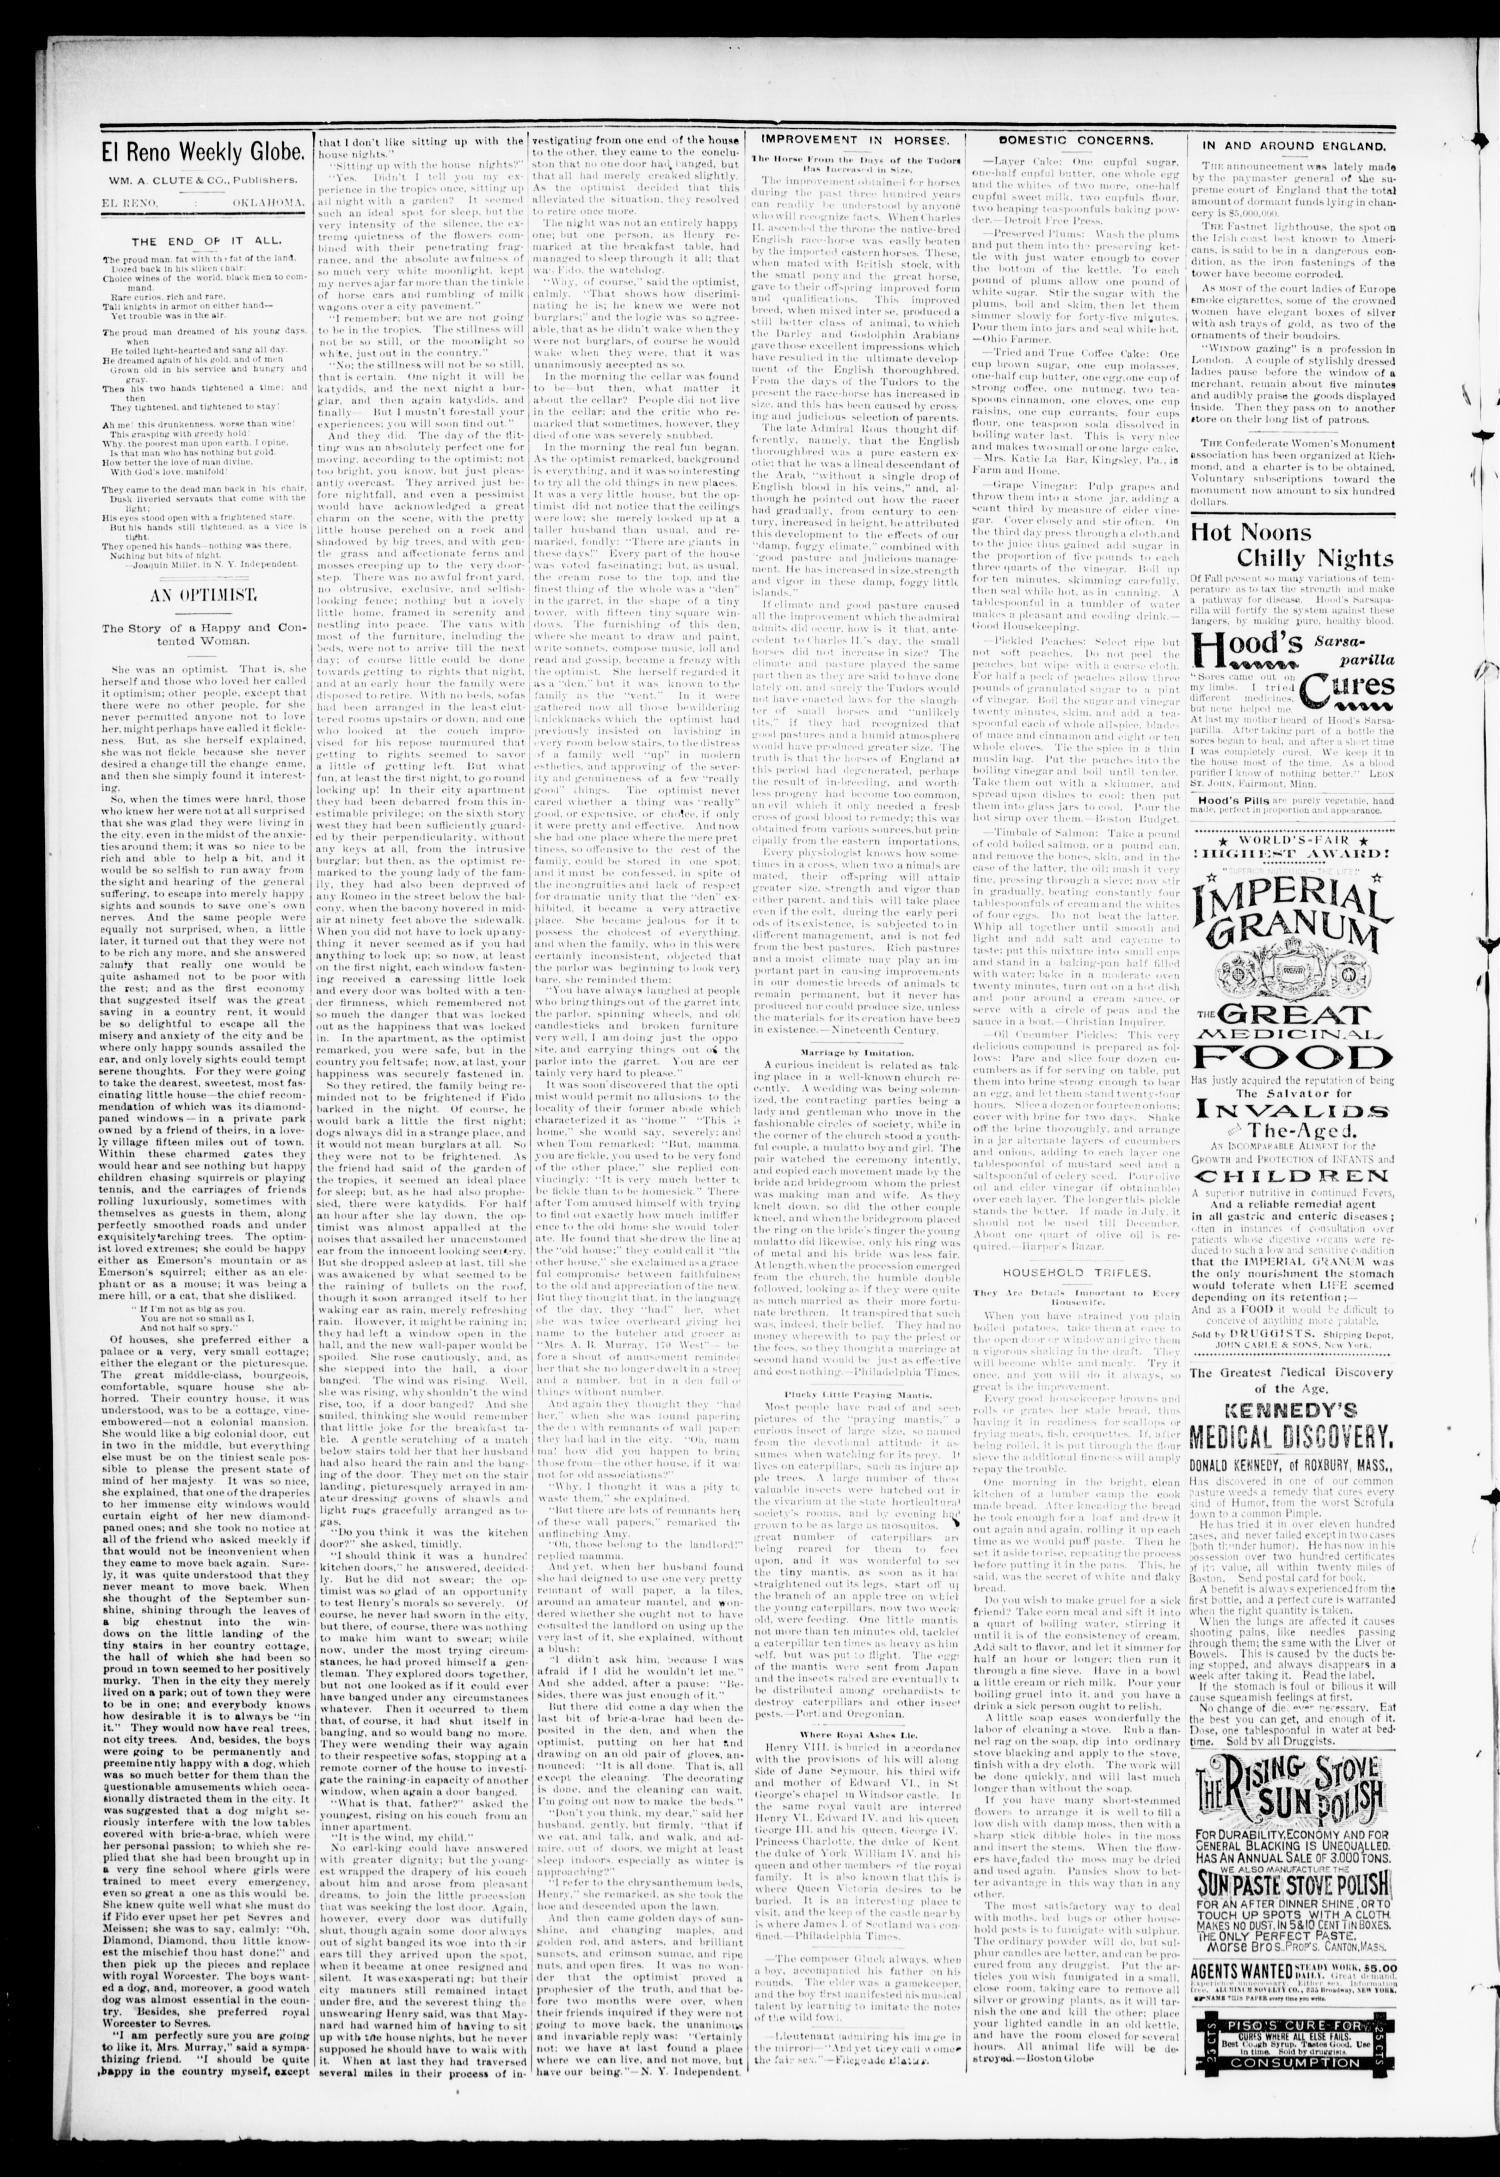 El Reno Weekly Globe. (El Reno, Okla.), Vol. 1, No. 35, Ed. 1 Friday, October 26, 1894                                                                                                      [Sequence #]: 2 of 9